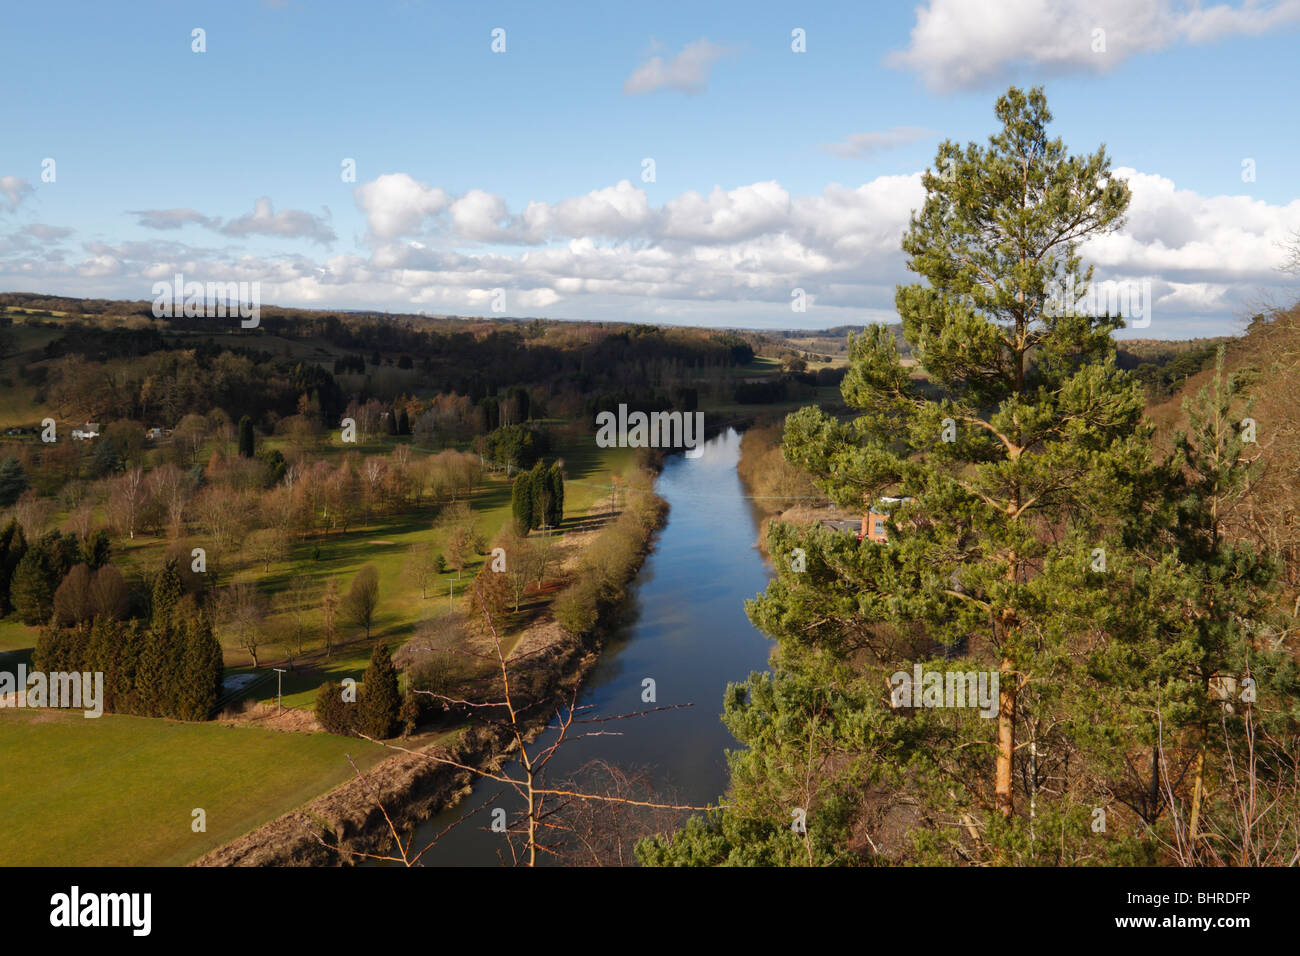 The view north along the River Severn, from the look out point on High Rock, Bridgnorth, Shropshire. Golf course - Stock Image